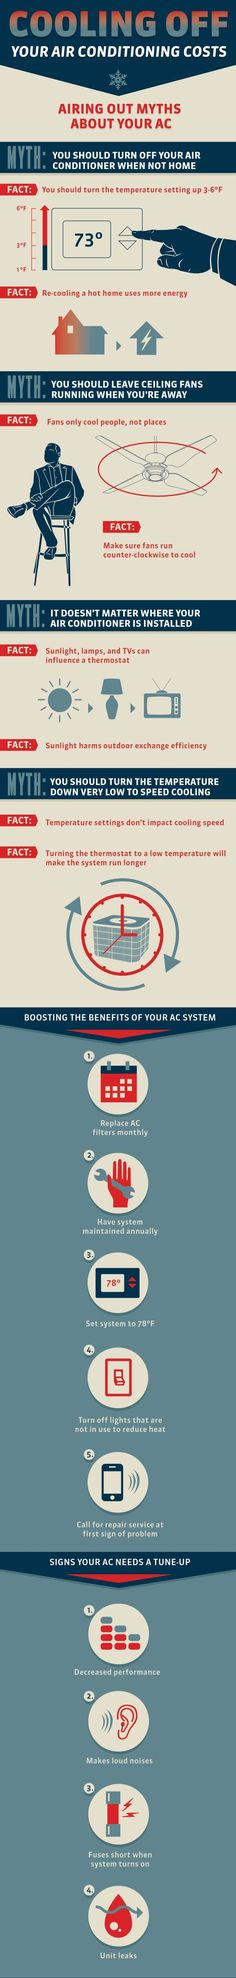 Replacing the air conditioner's filters once a month can help you boost the effectiveness of this system. Find other suggestions to help you boost the benefits of your AC system by taking a look at this infographic from an AC repair company in St. Air Conditioning Installation, Air Conditioning Services, Heating And Air Conditioning, Energy Saving Tips, Save Energy, Hvac Maintenance, Energy Efficient Homes, Energy Efficiency, Heating And Cooling